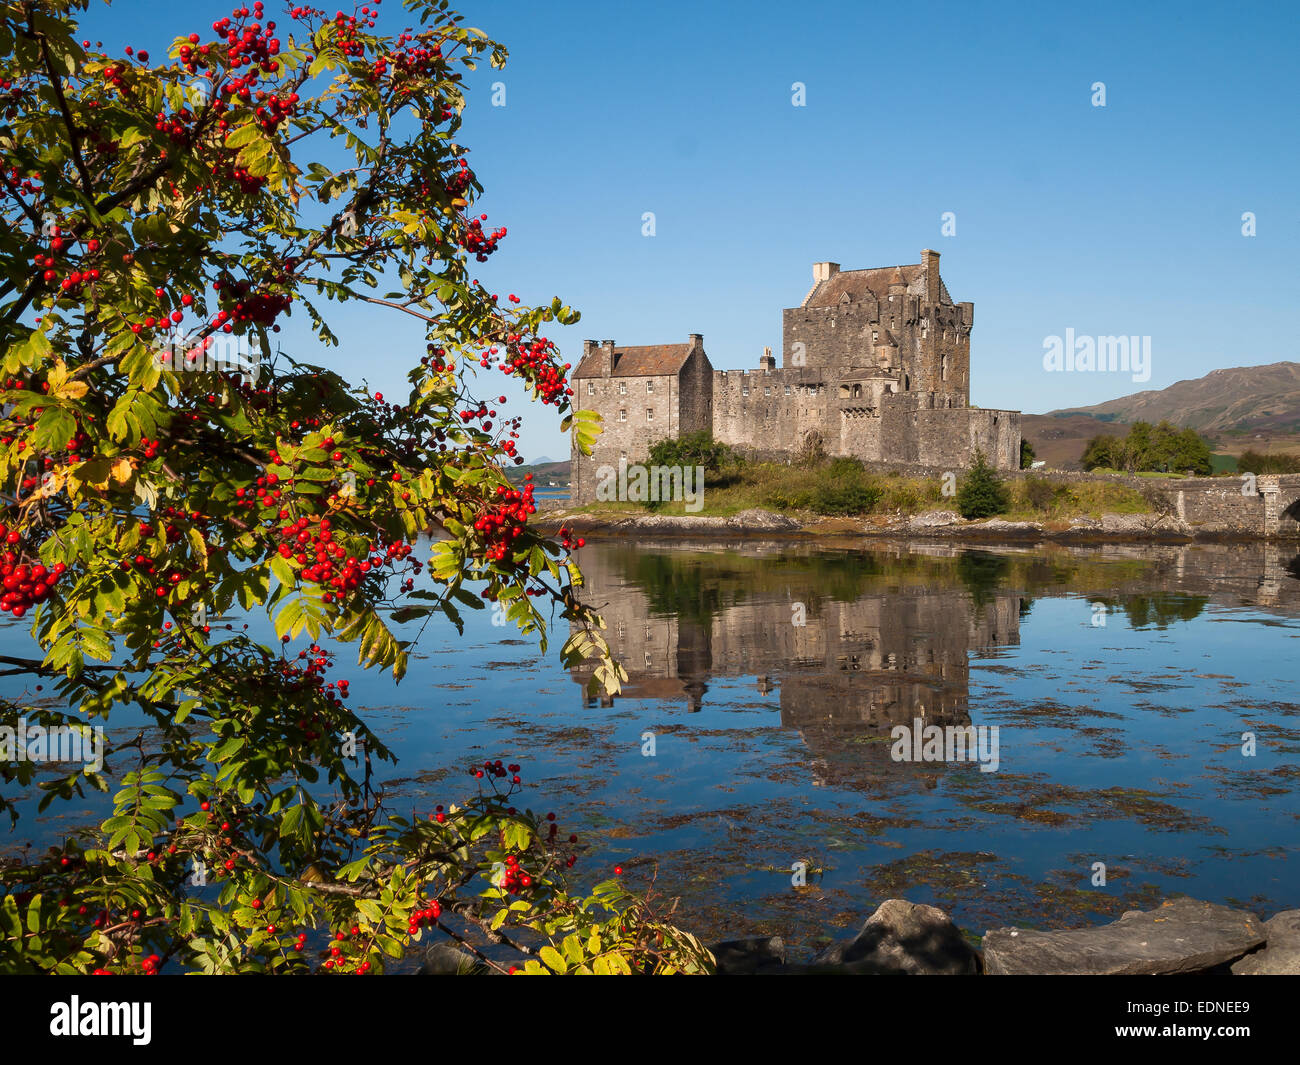 eilean donan castle loch duich with rowan berries in autumn - Stock Image